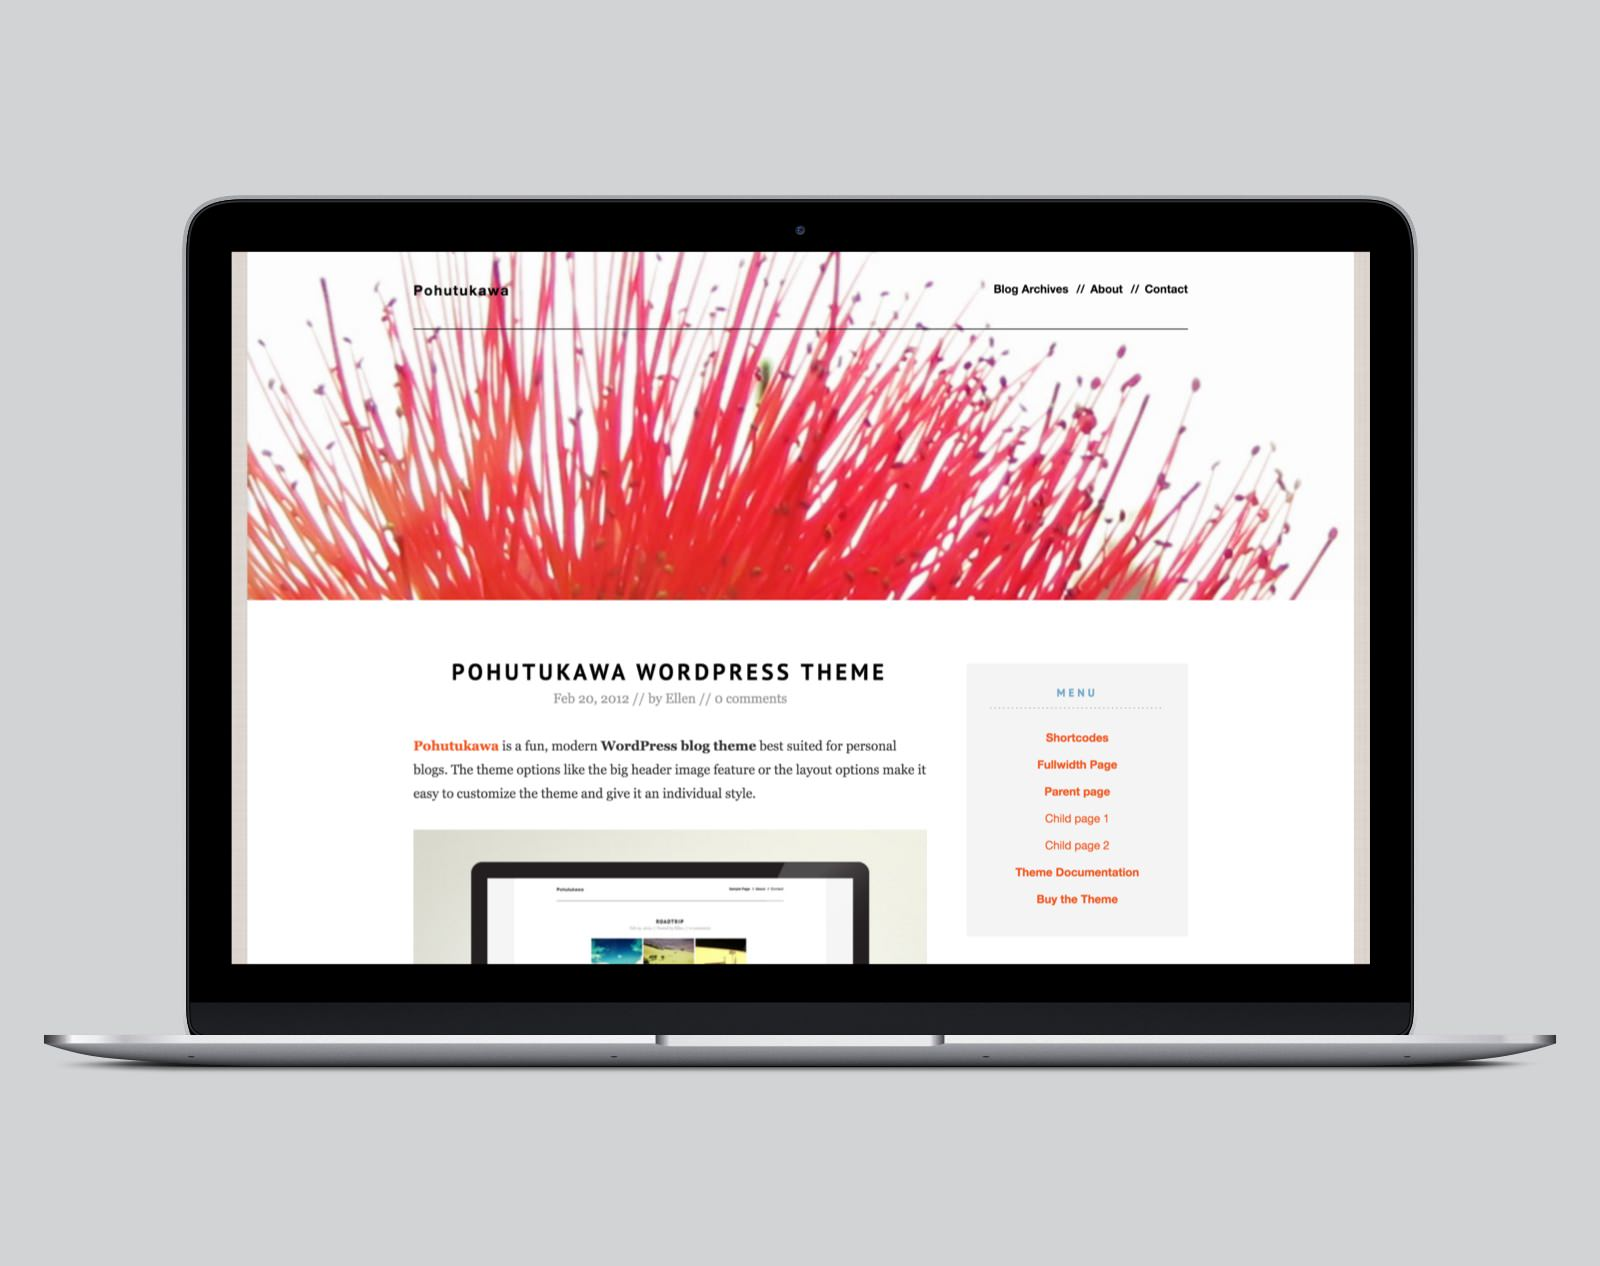 Pohutukawa WordPress Blog Theme